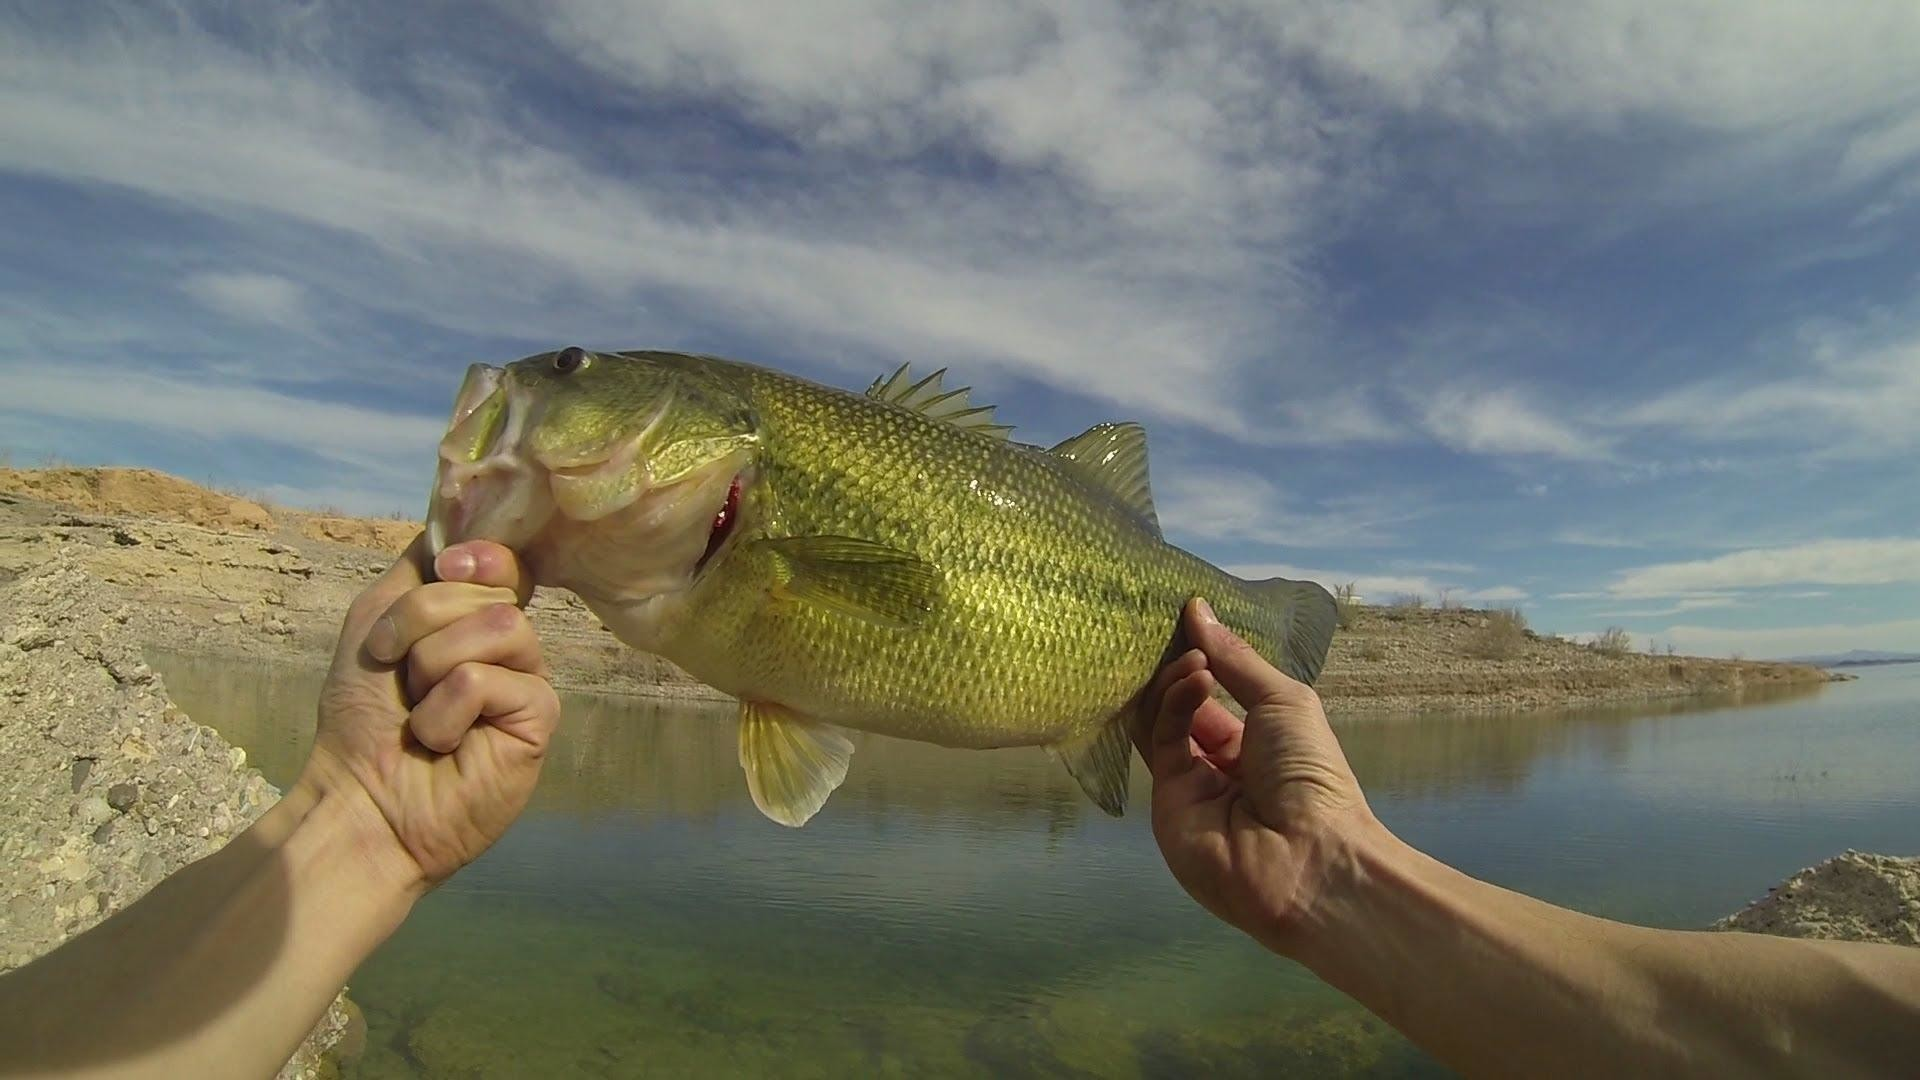 Bass Fishing Wallpaper HD (62+ images)